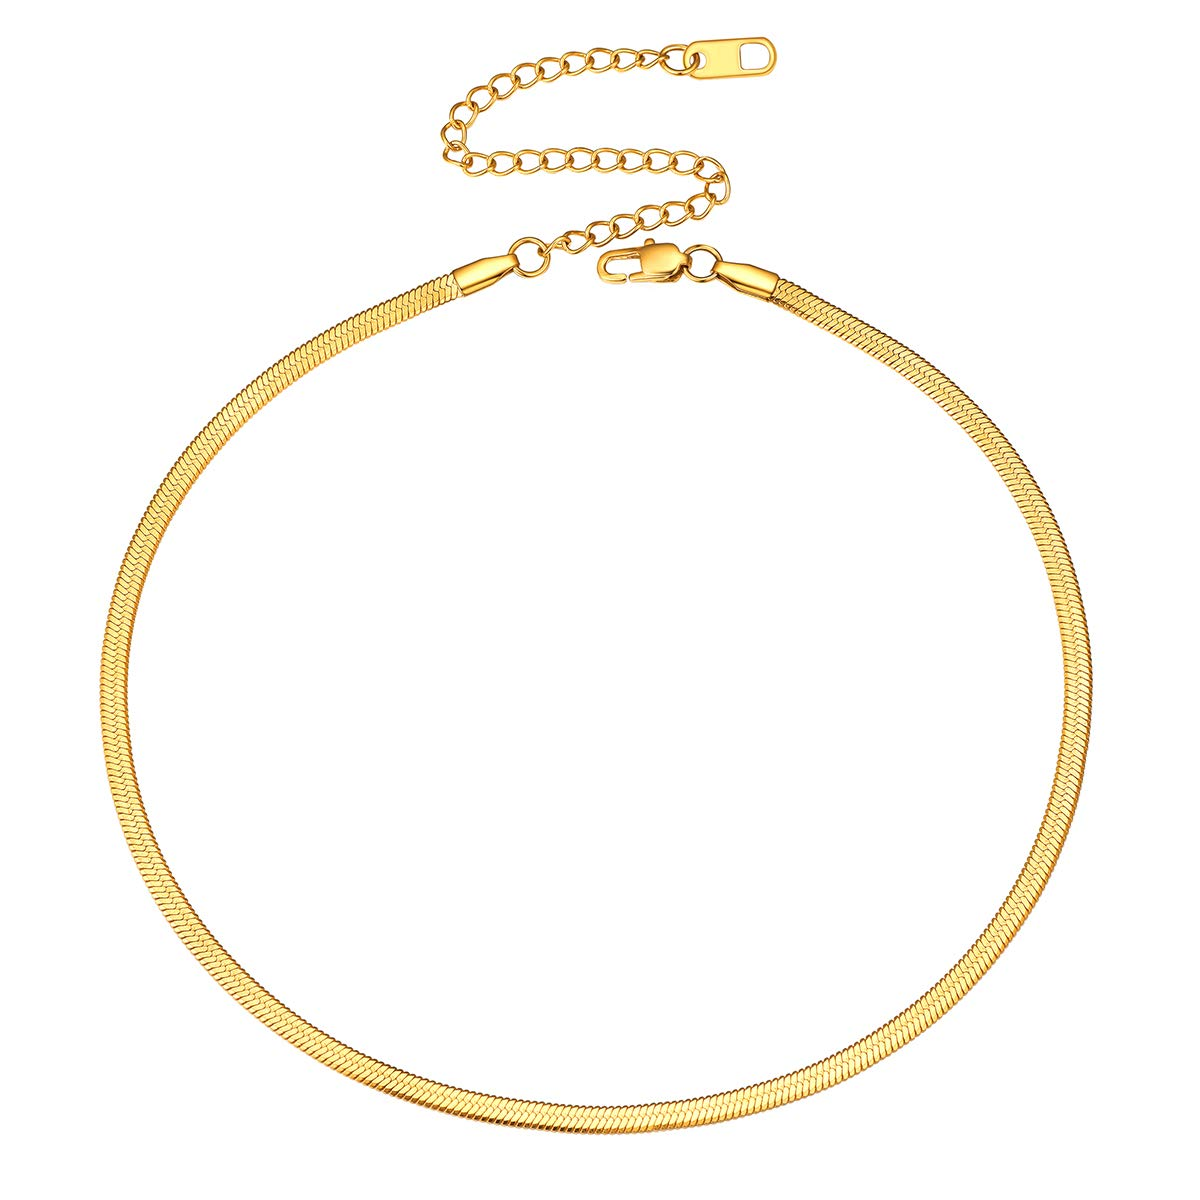 FOCALOOK 3mm Flat Snake Chain Stainless Steel Necklace 18k Real Gold Plated for Women Men Teen Box(4 Colors)